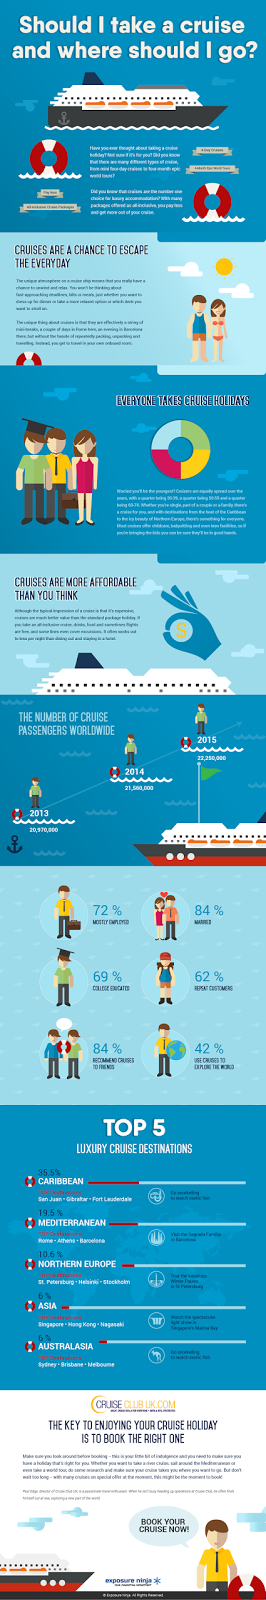 Is a Cruise for you? Infographic - Rachel Nicole UK Travel Blogger